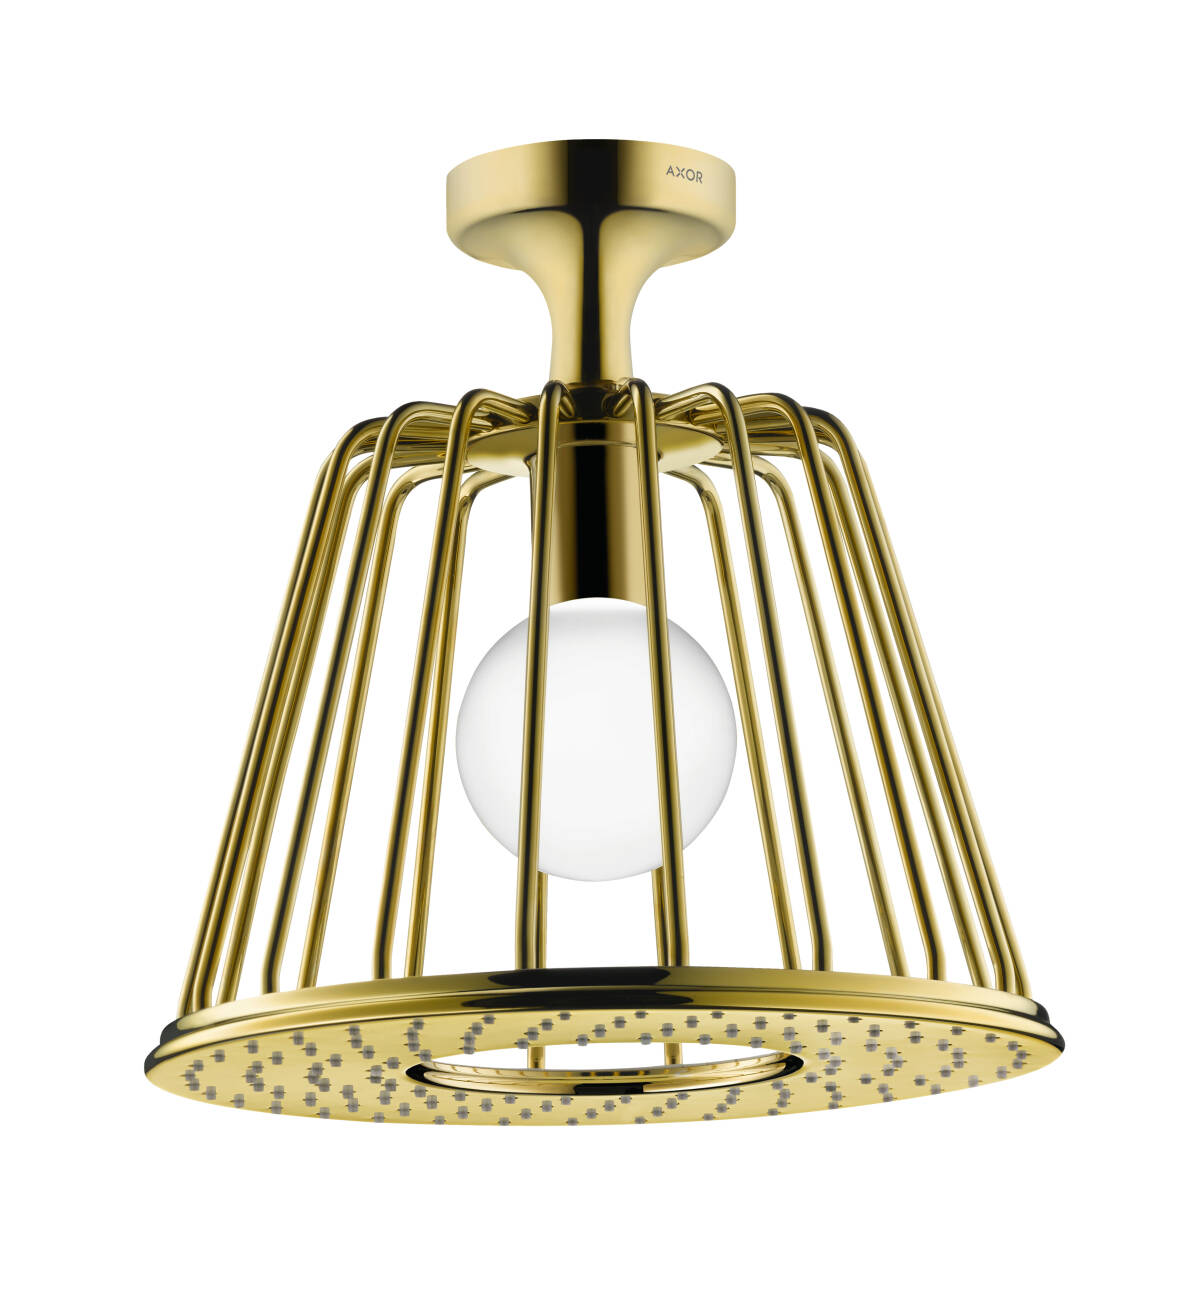 LampShower 275 1jet with ceiling connector, Polished Gold Optic, 26032990